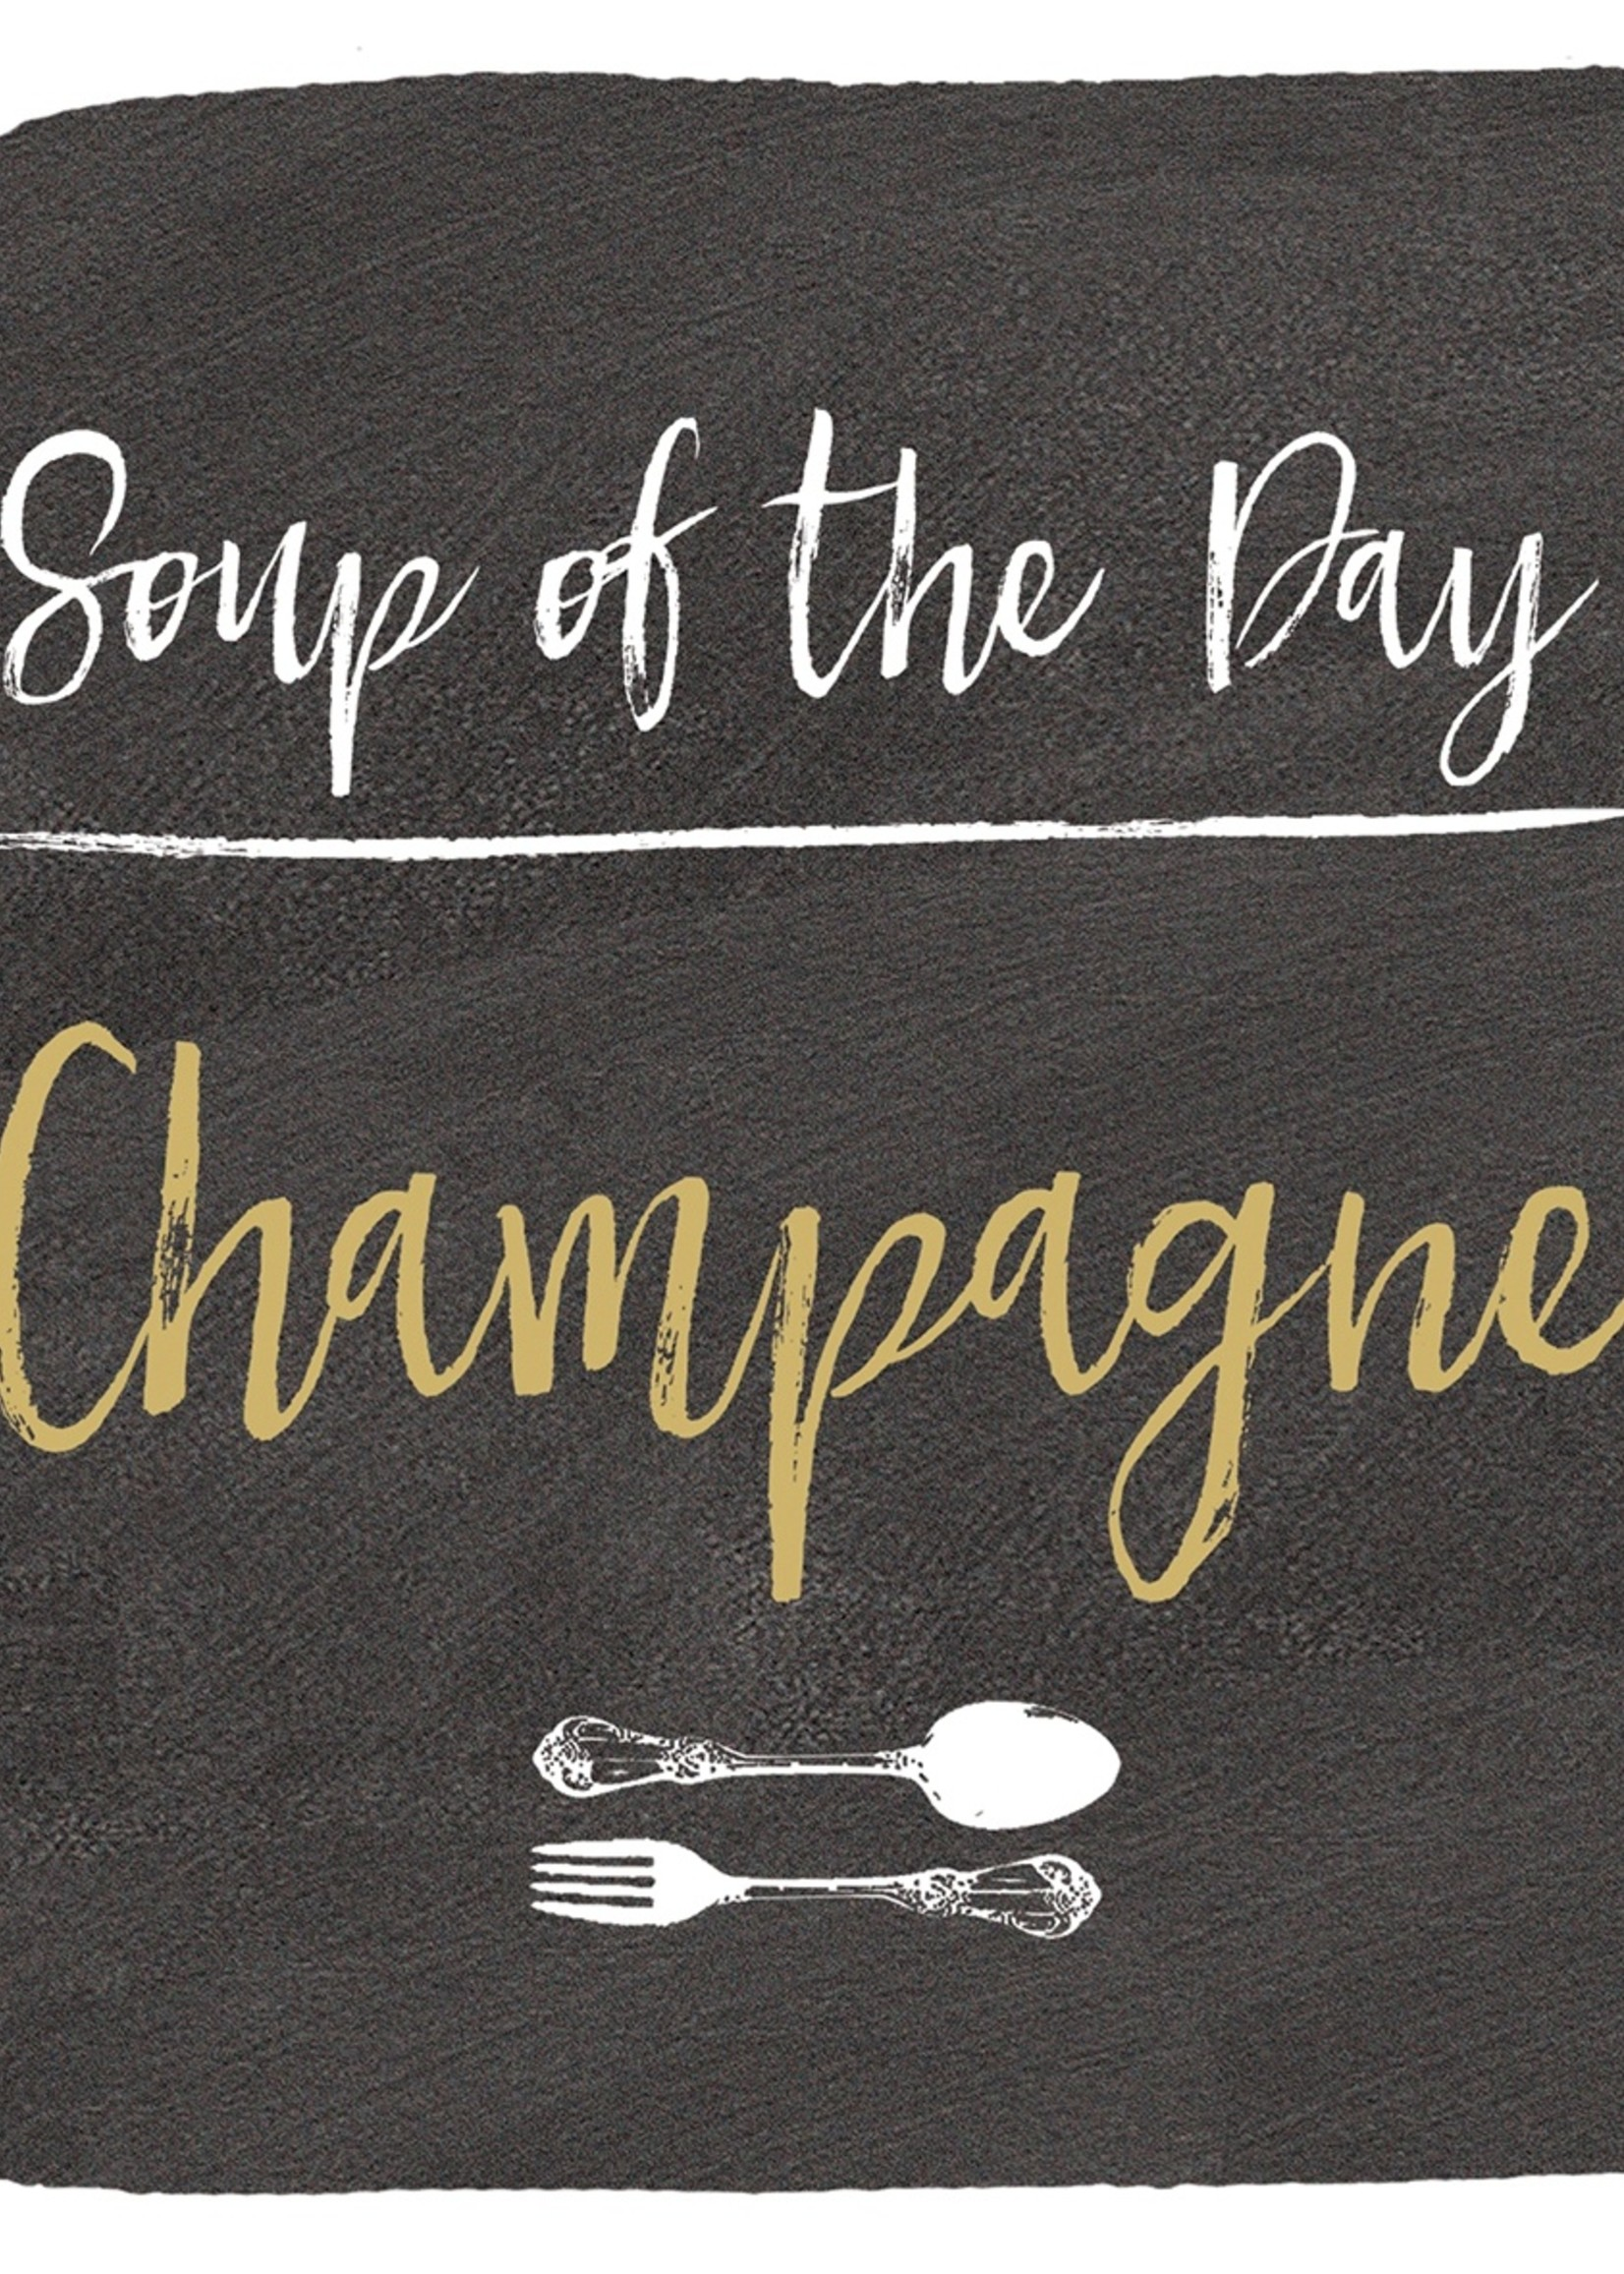 PPD Soup of the day Napkin 33x33